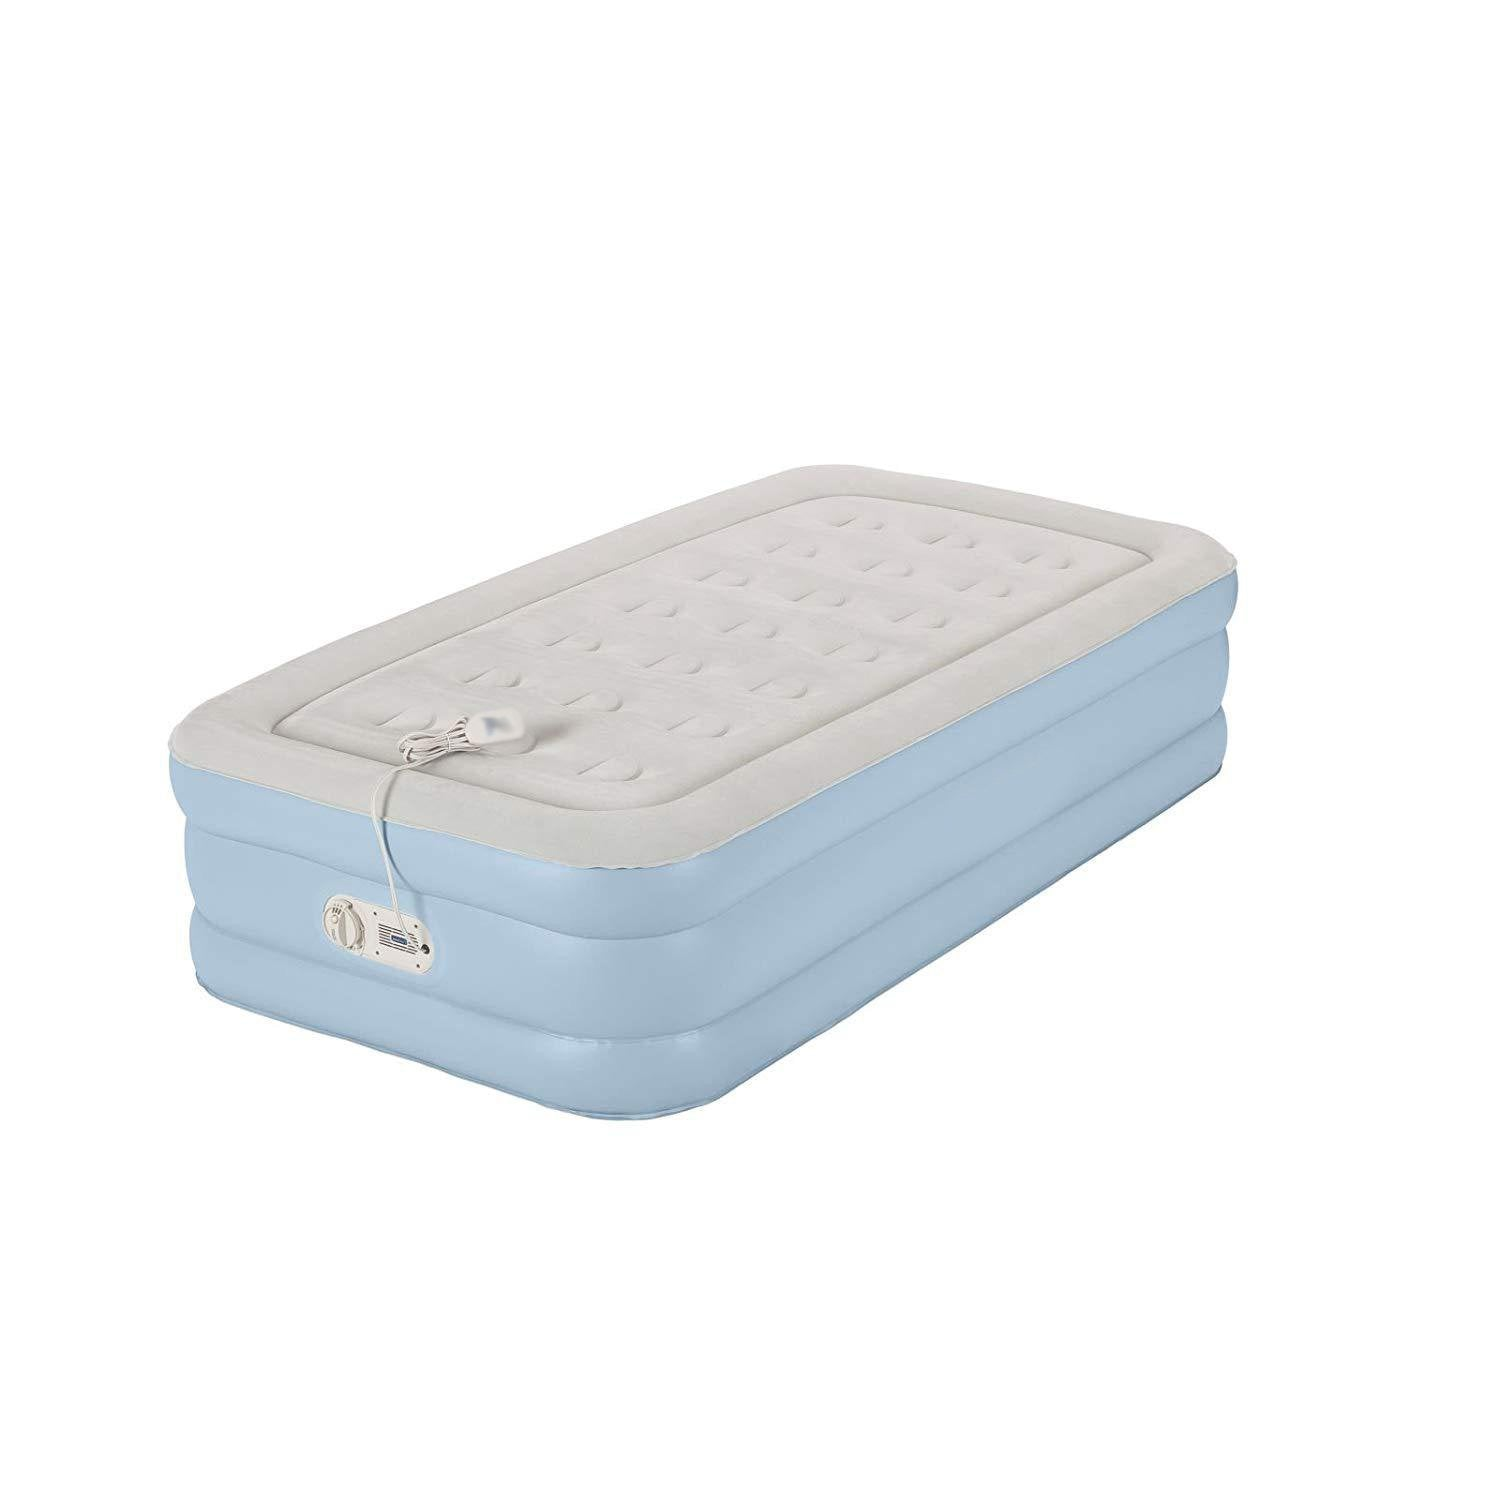 One-Touch Comfort Air Mattress,Twin